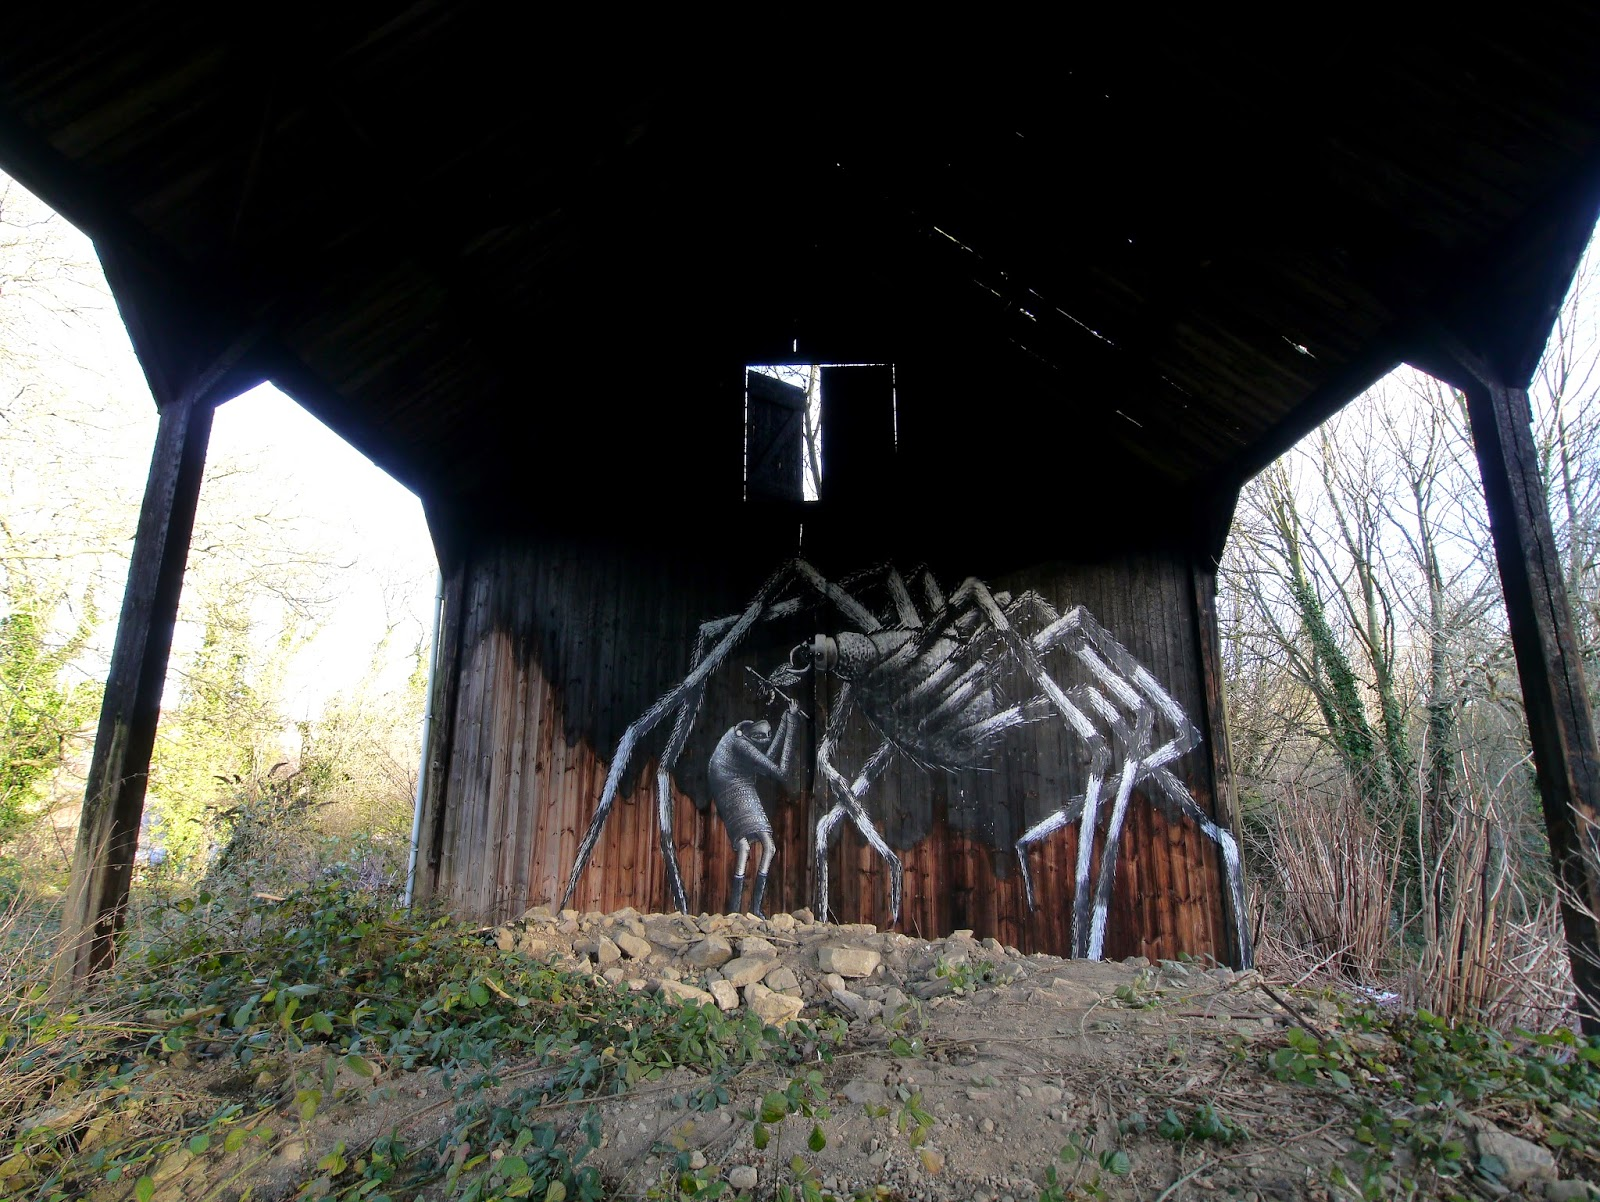 phlegm-the-spider-in-mosborough-sheffield-04